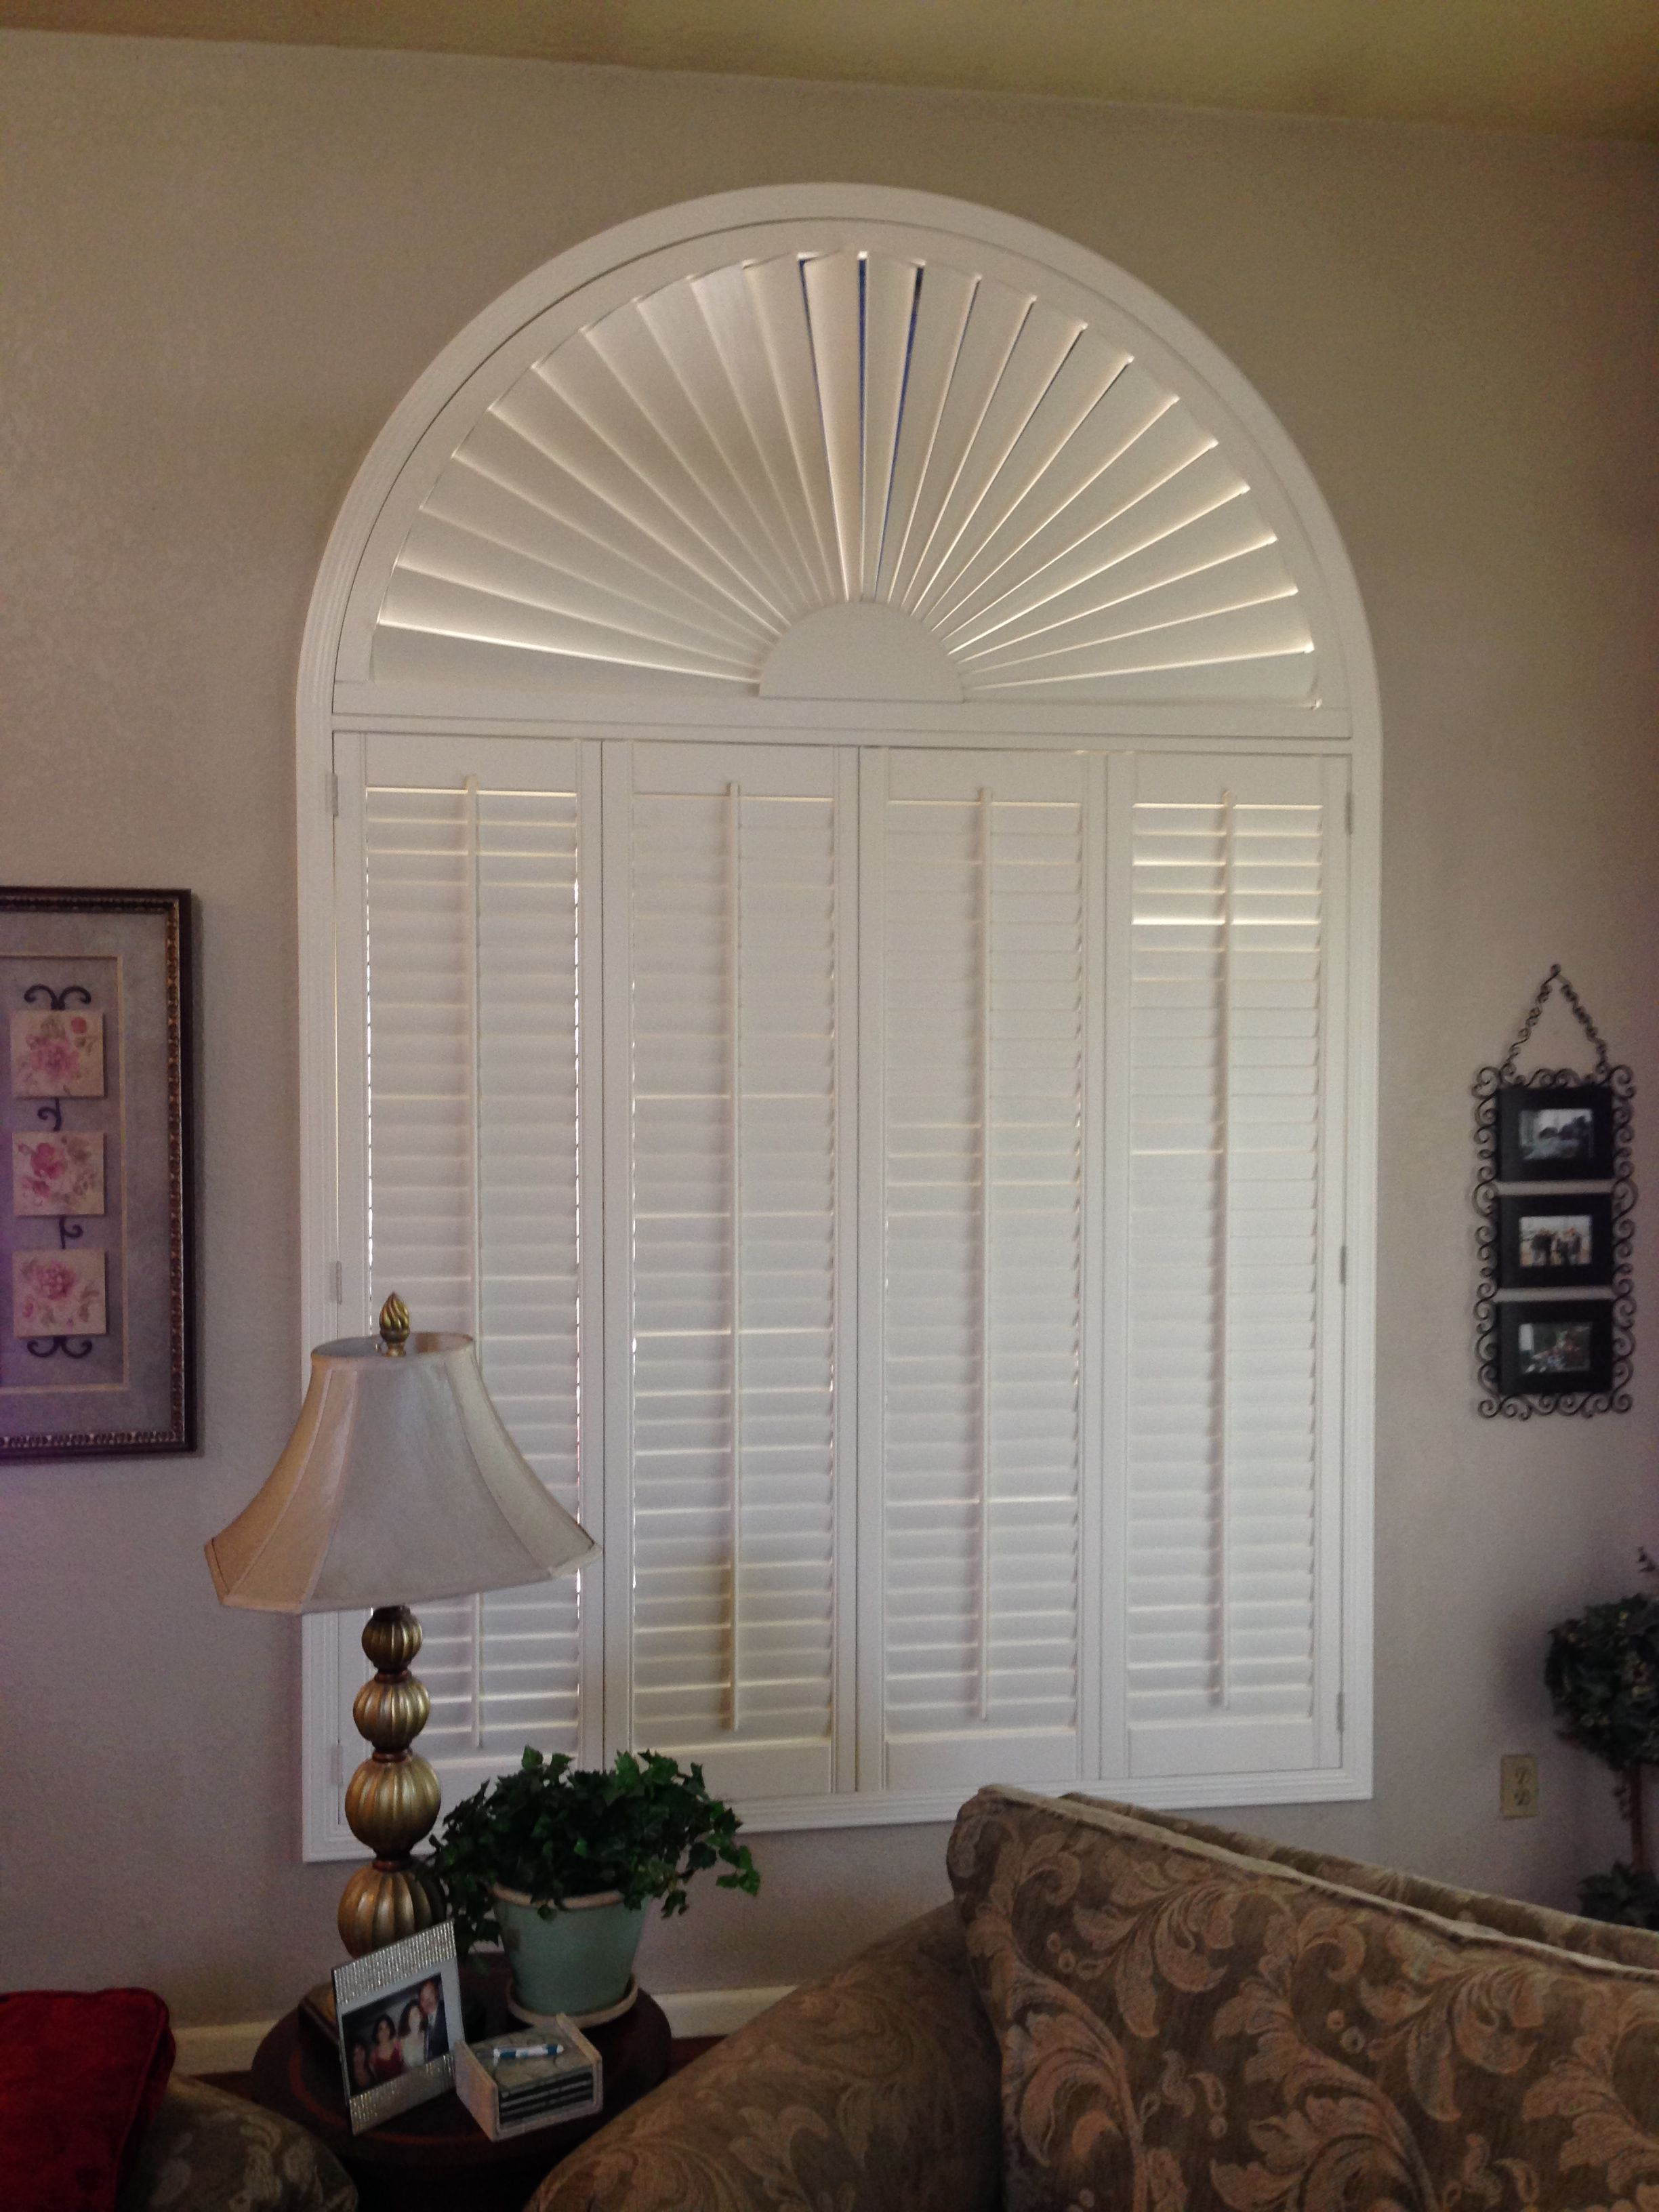 Sunburst Shutter Southwestblinds Wood Shutters Window Coverings Blinds Wooden